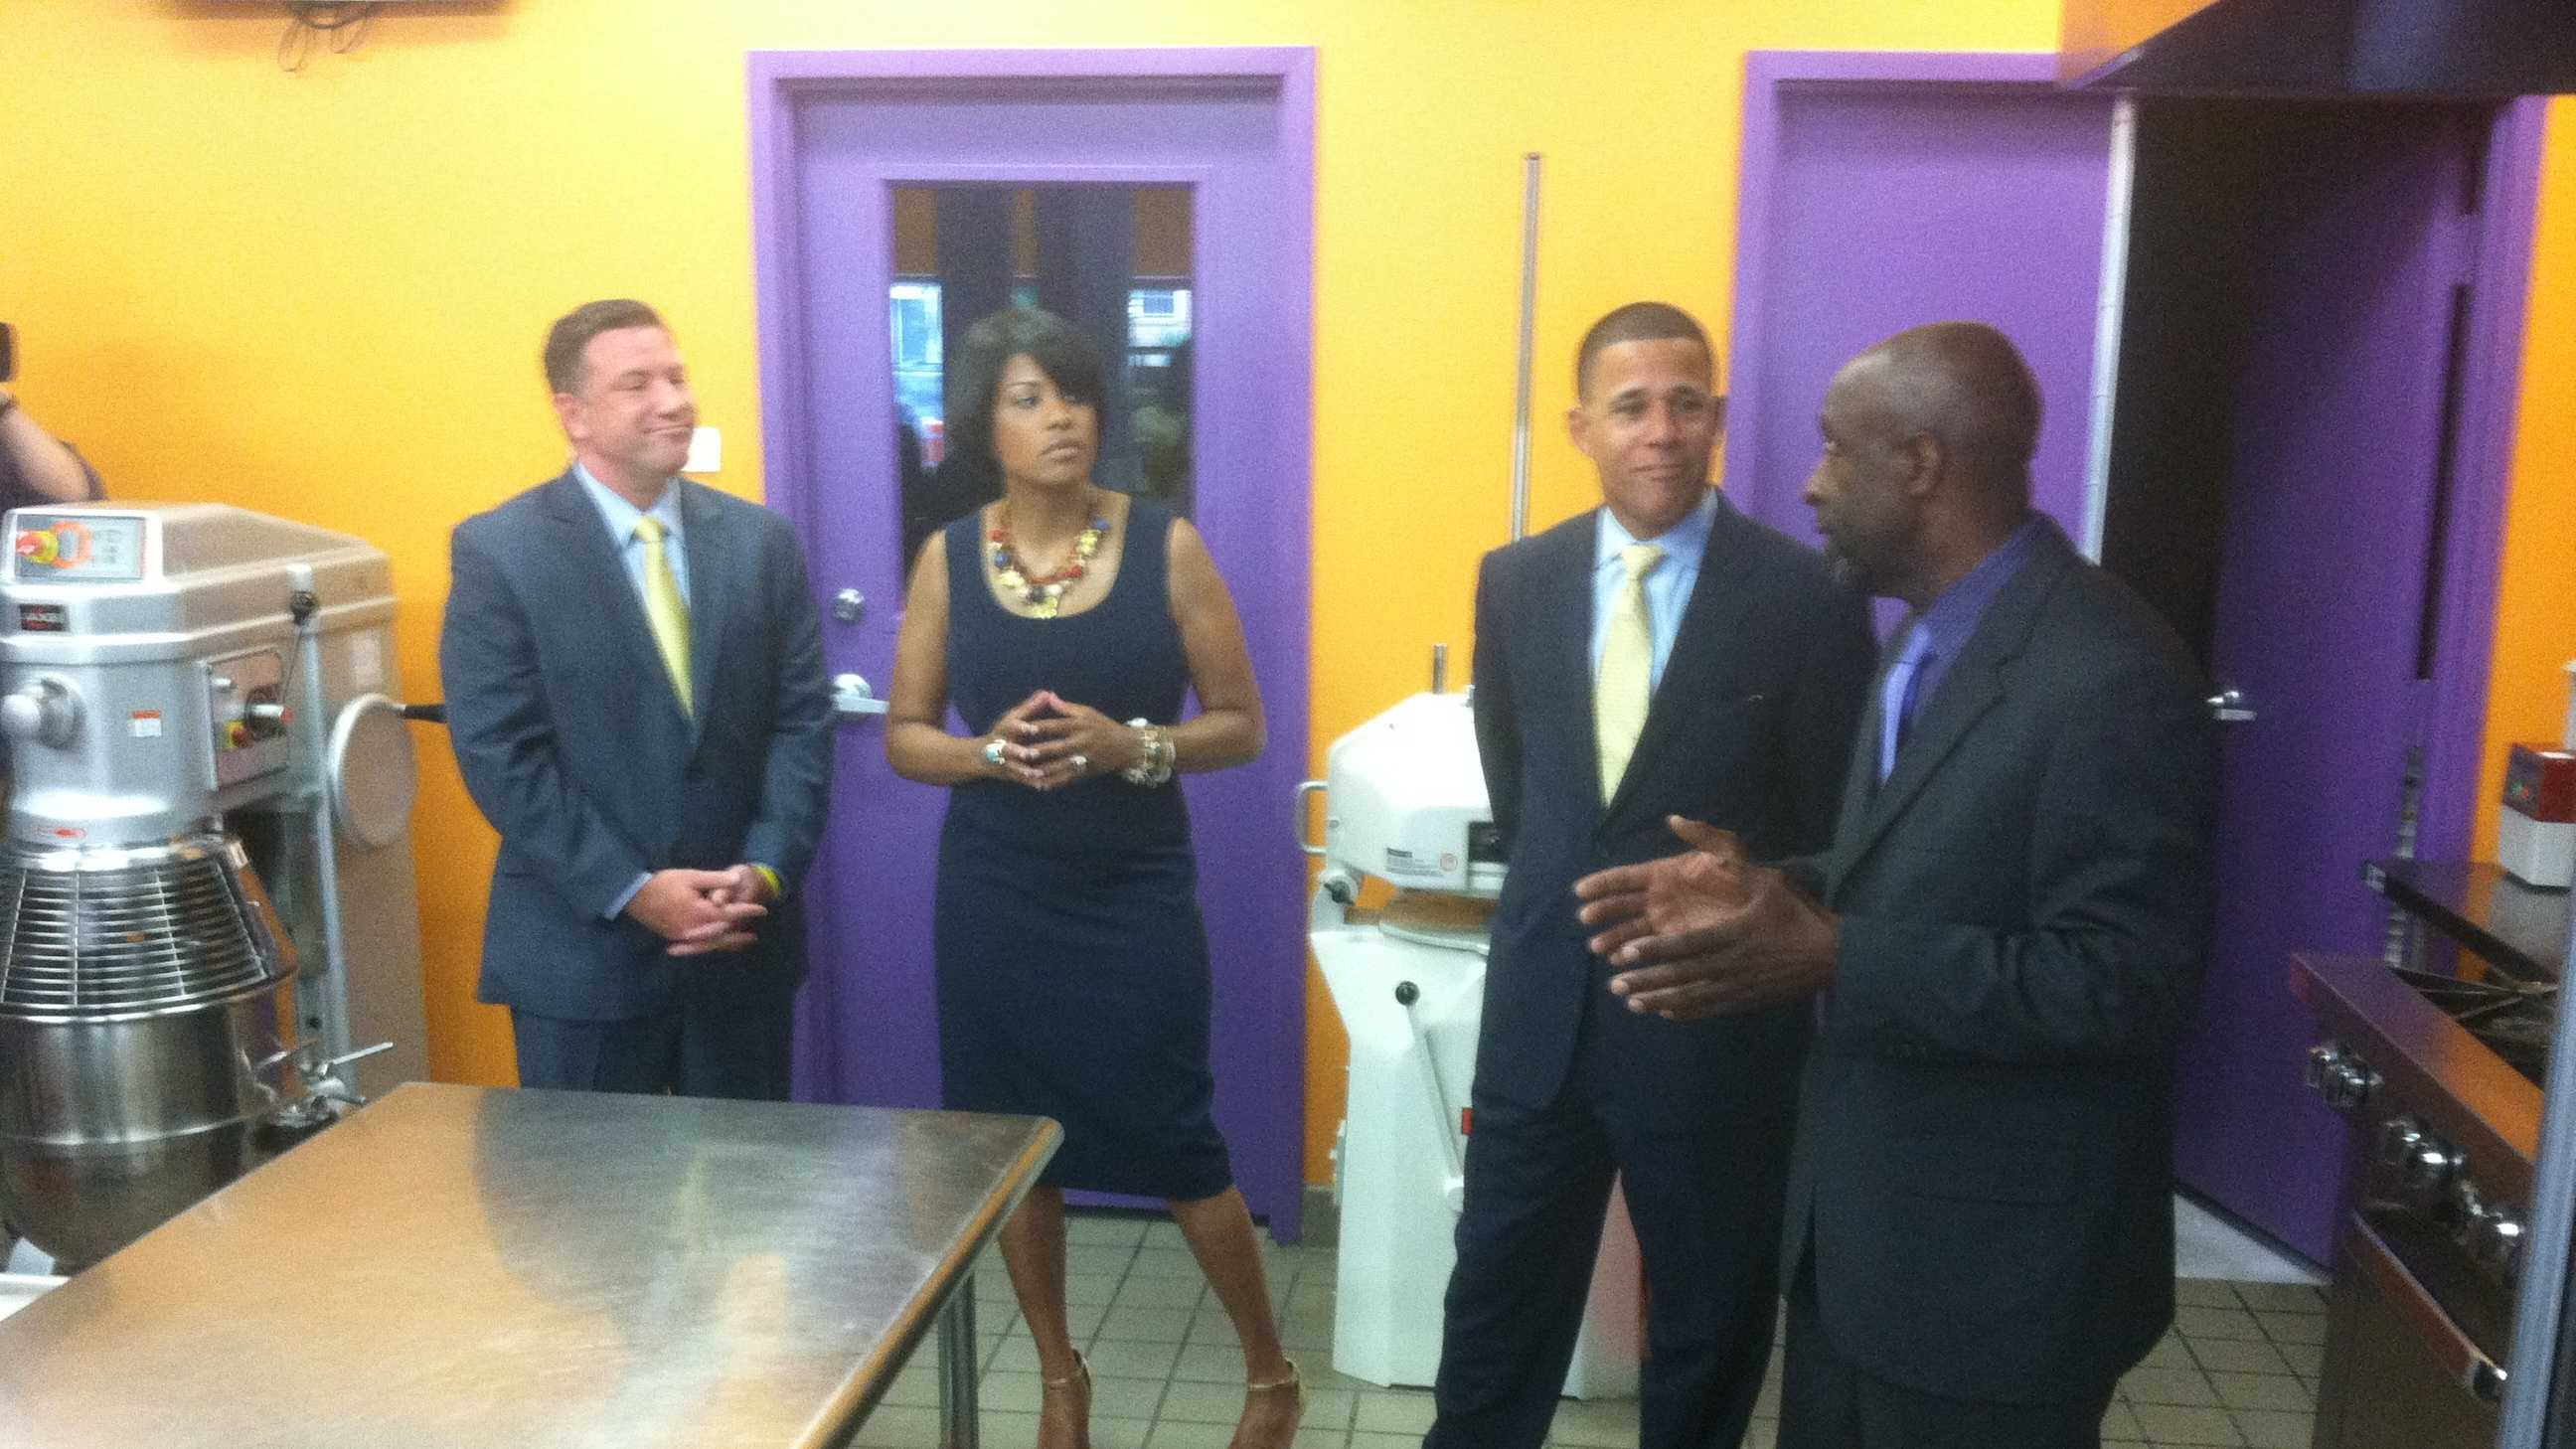 Baltimore Mayor Stephanie Rawlings-Blake visits the Avenue Bakery with Lt. Gov. Anthony Brown and his running mate, Howard County Executive Ken Ulman, as she announces her supporter for his run for governor.